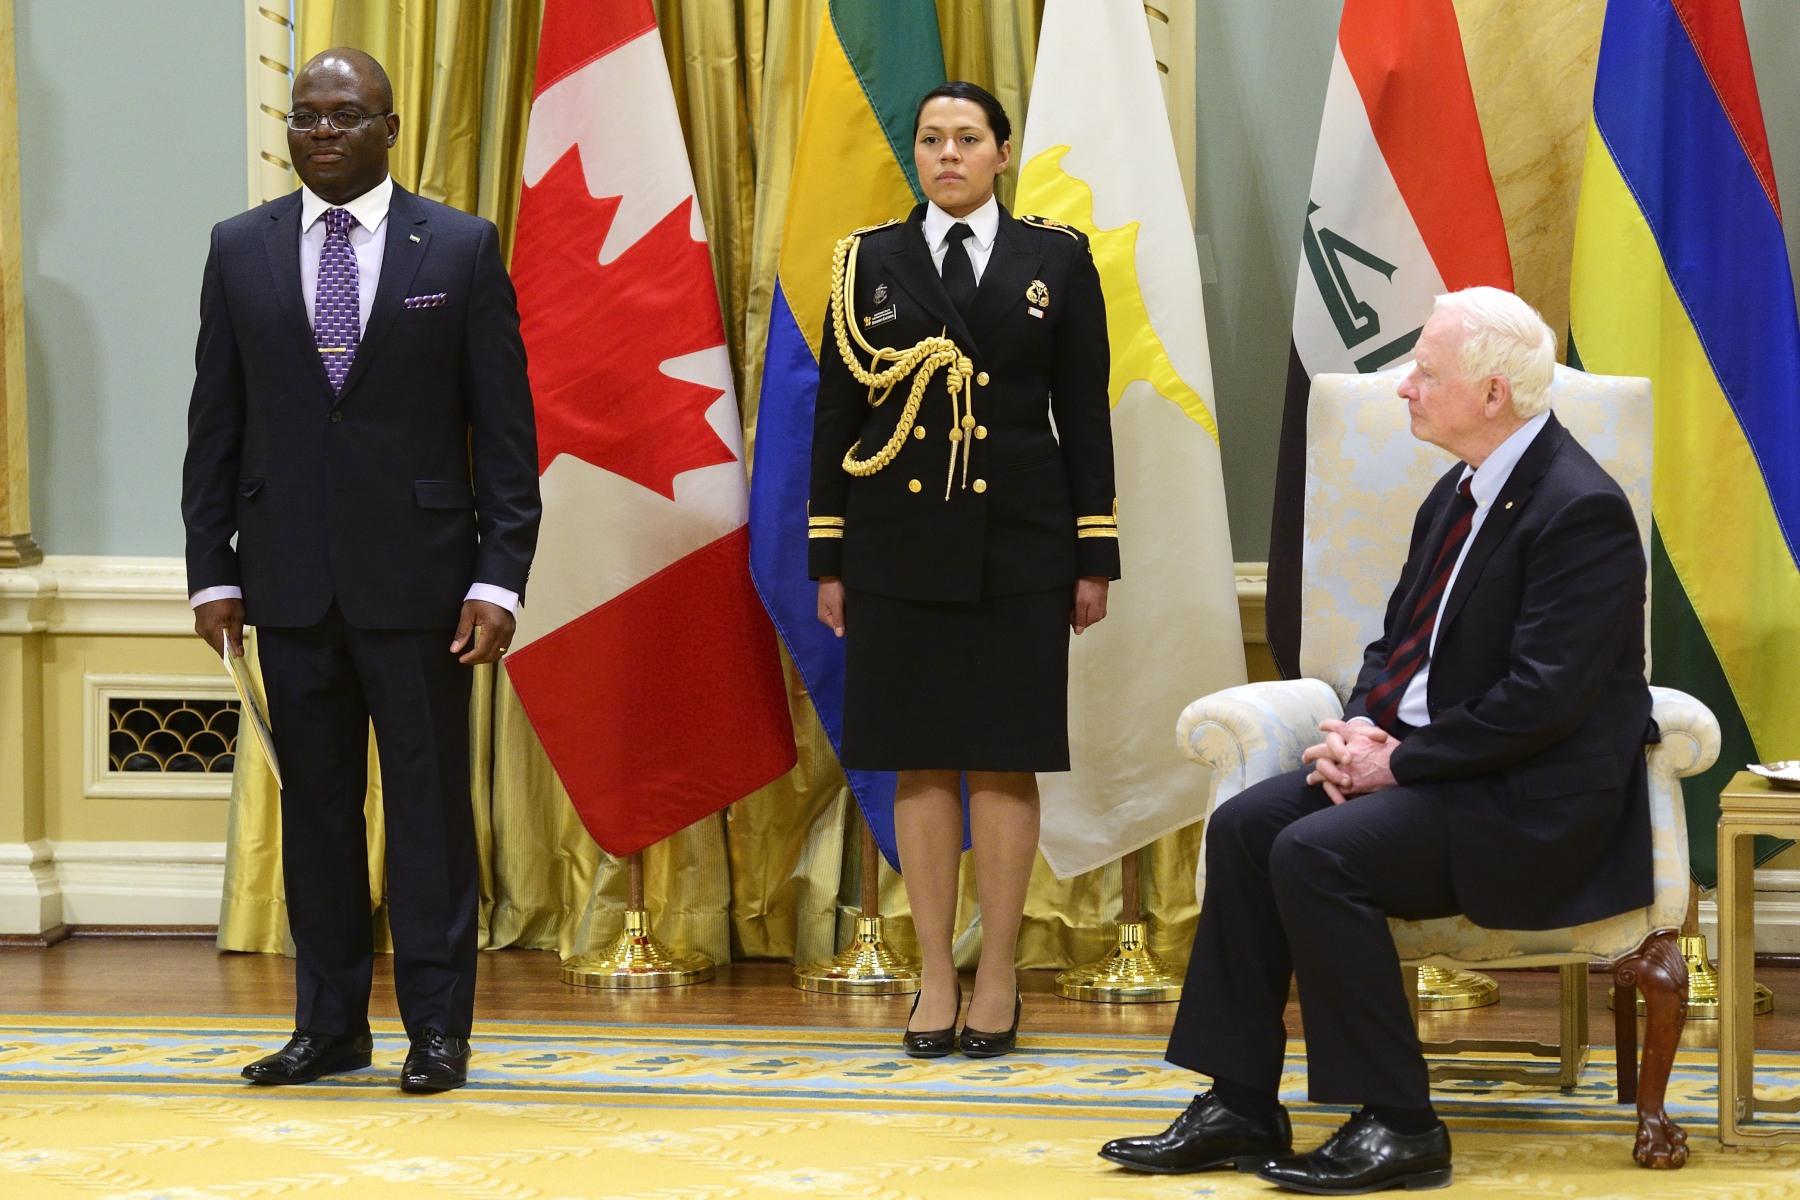 His Excellency Sosthène Ngokila, Ambassador of the Gabonese Republic, was the first to present his letters of credence to the Governor General.